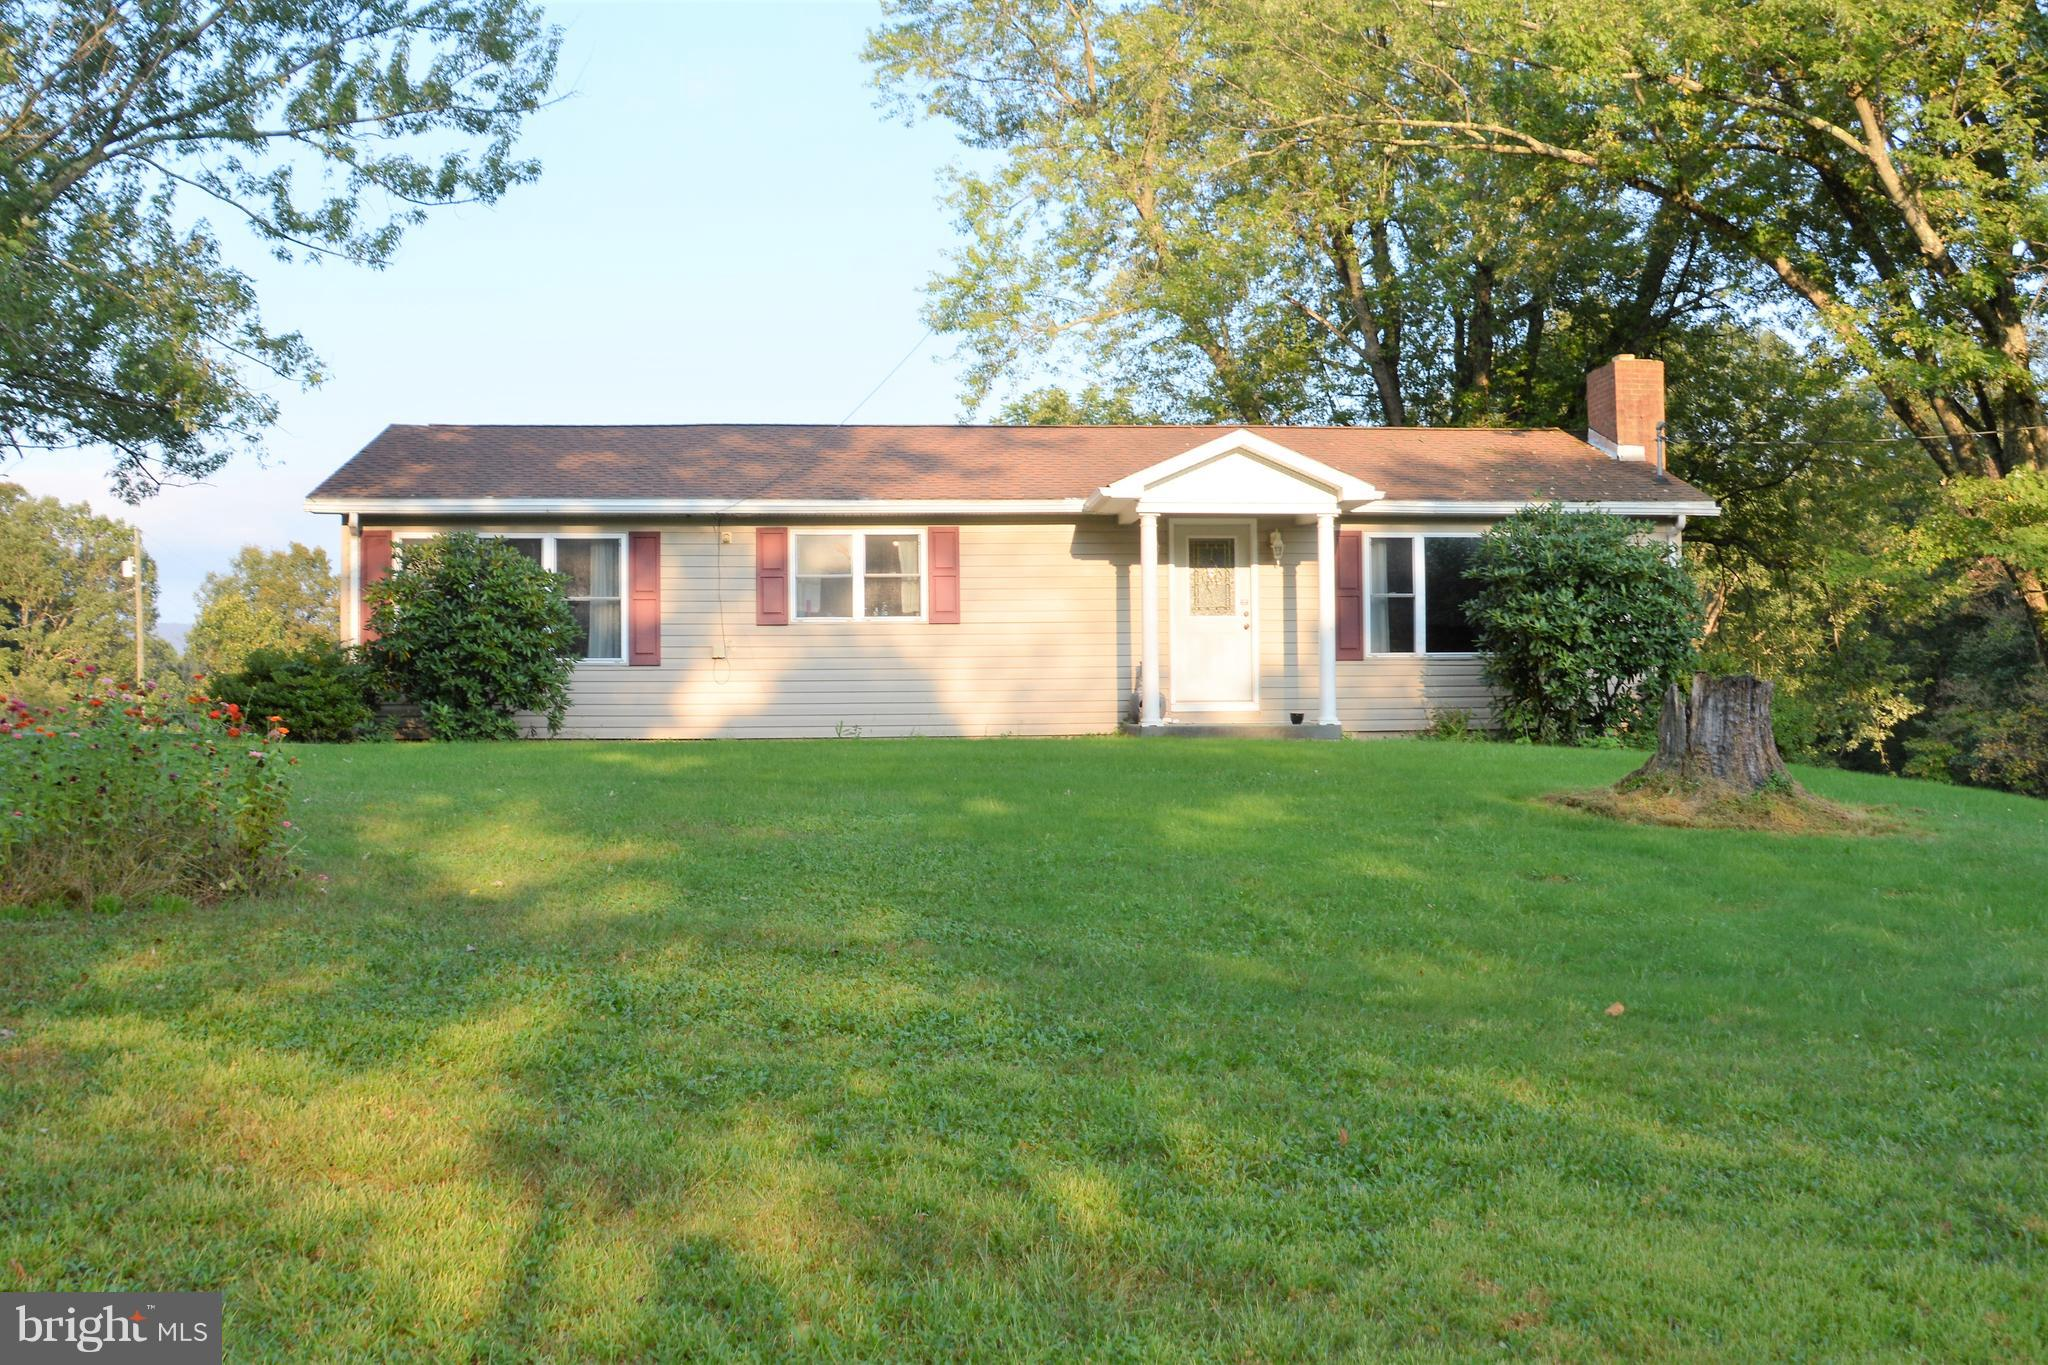 1228 PAPERTOWN ROAD, WARFORDSBURG, PA 17267